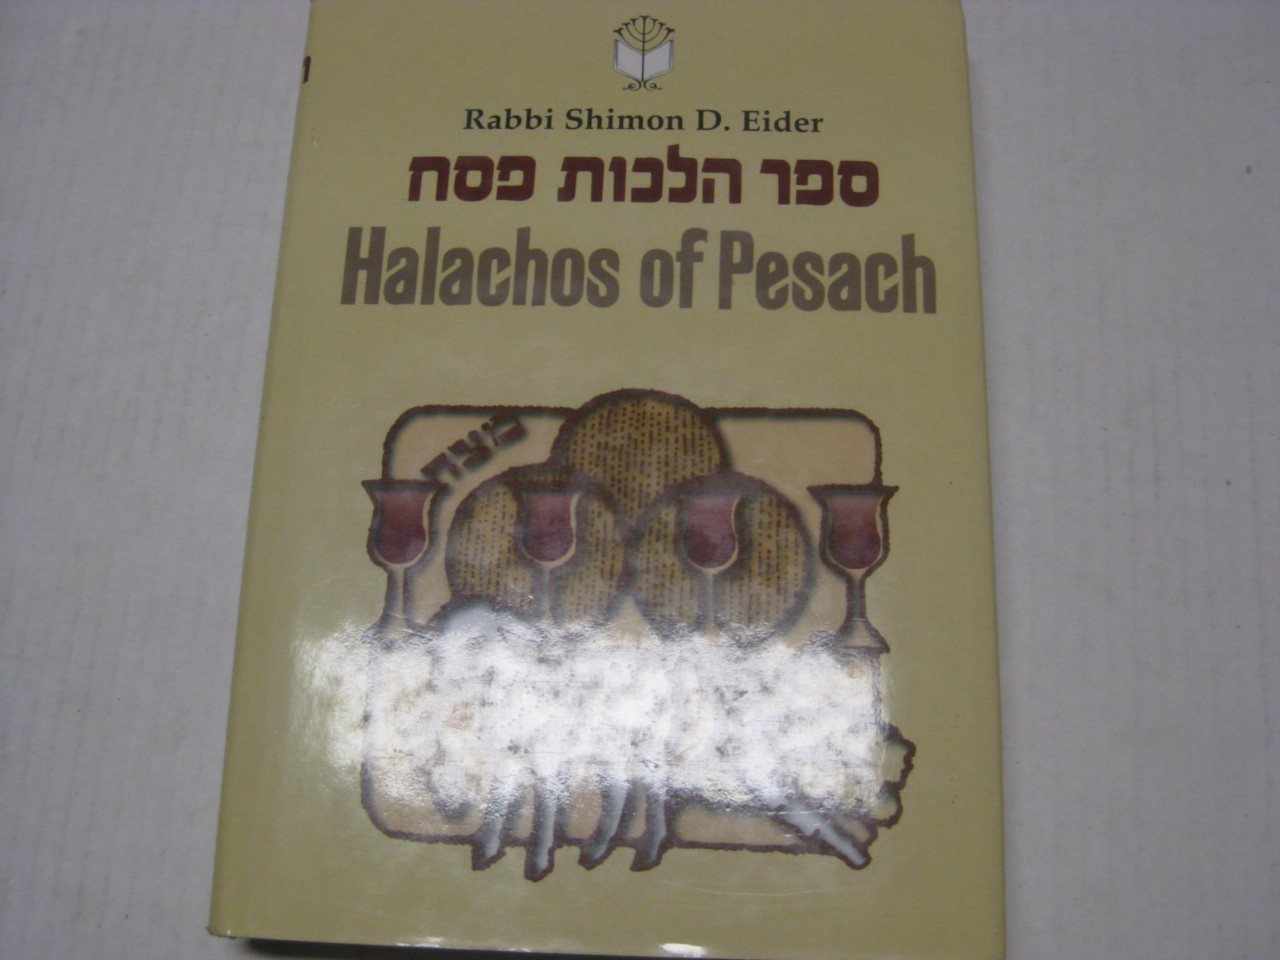 Halachos of Pesach by Shimon D. Eider ALL IN 1 guide to the laws of Passover